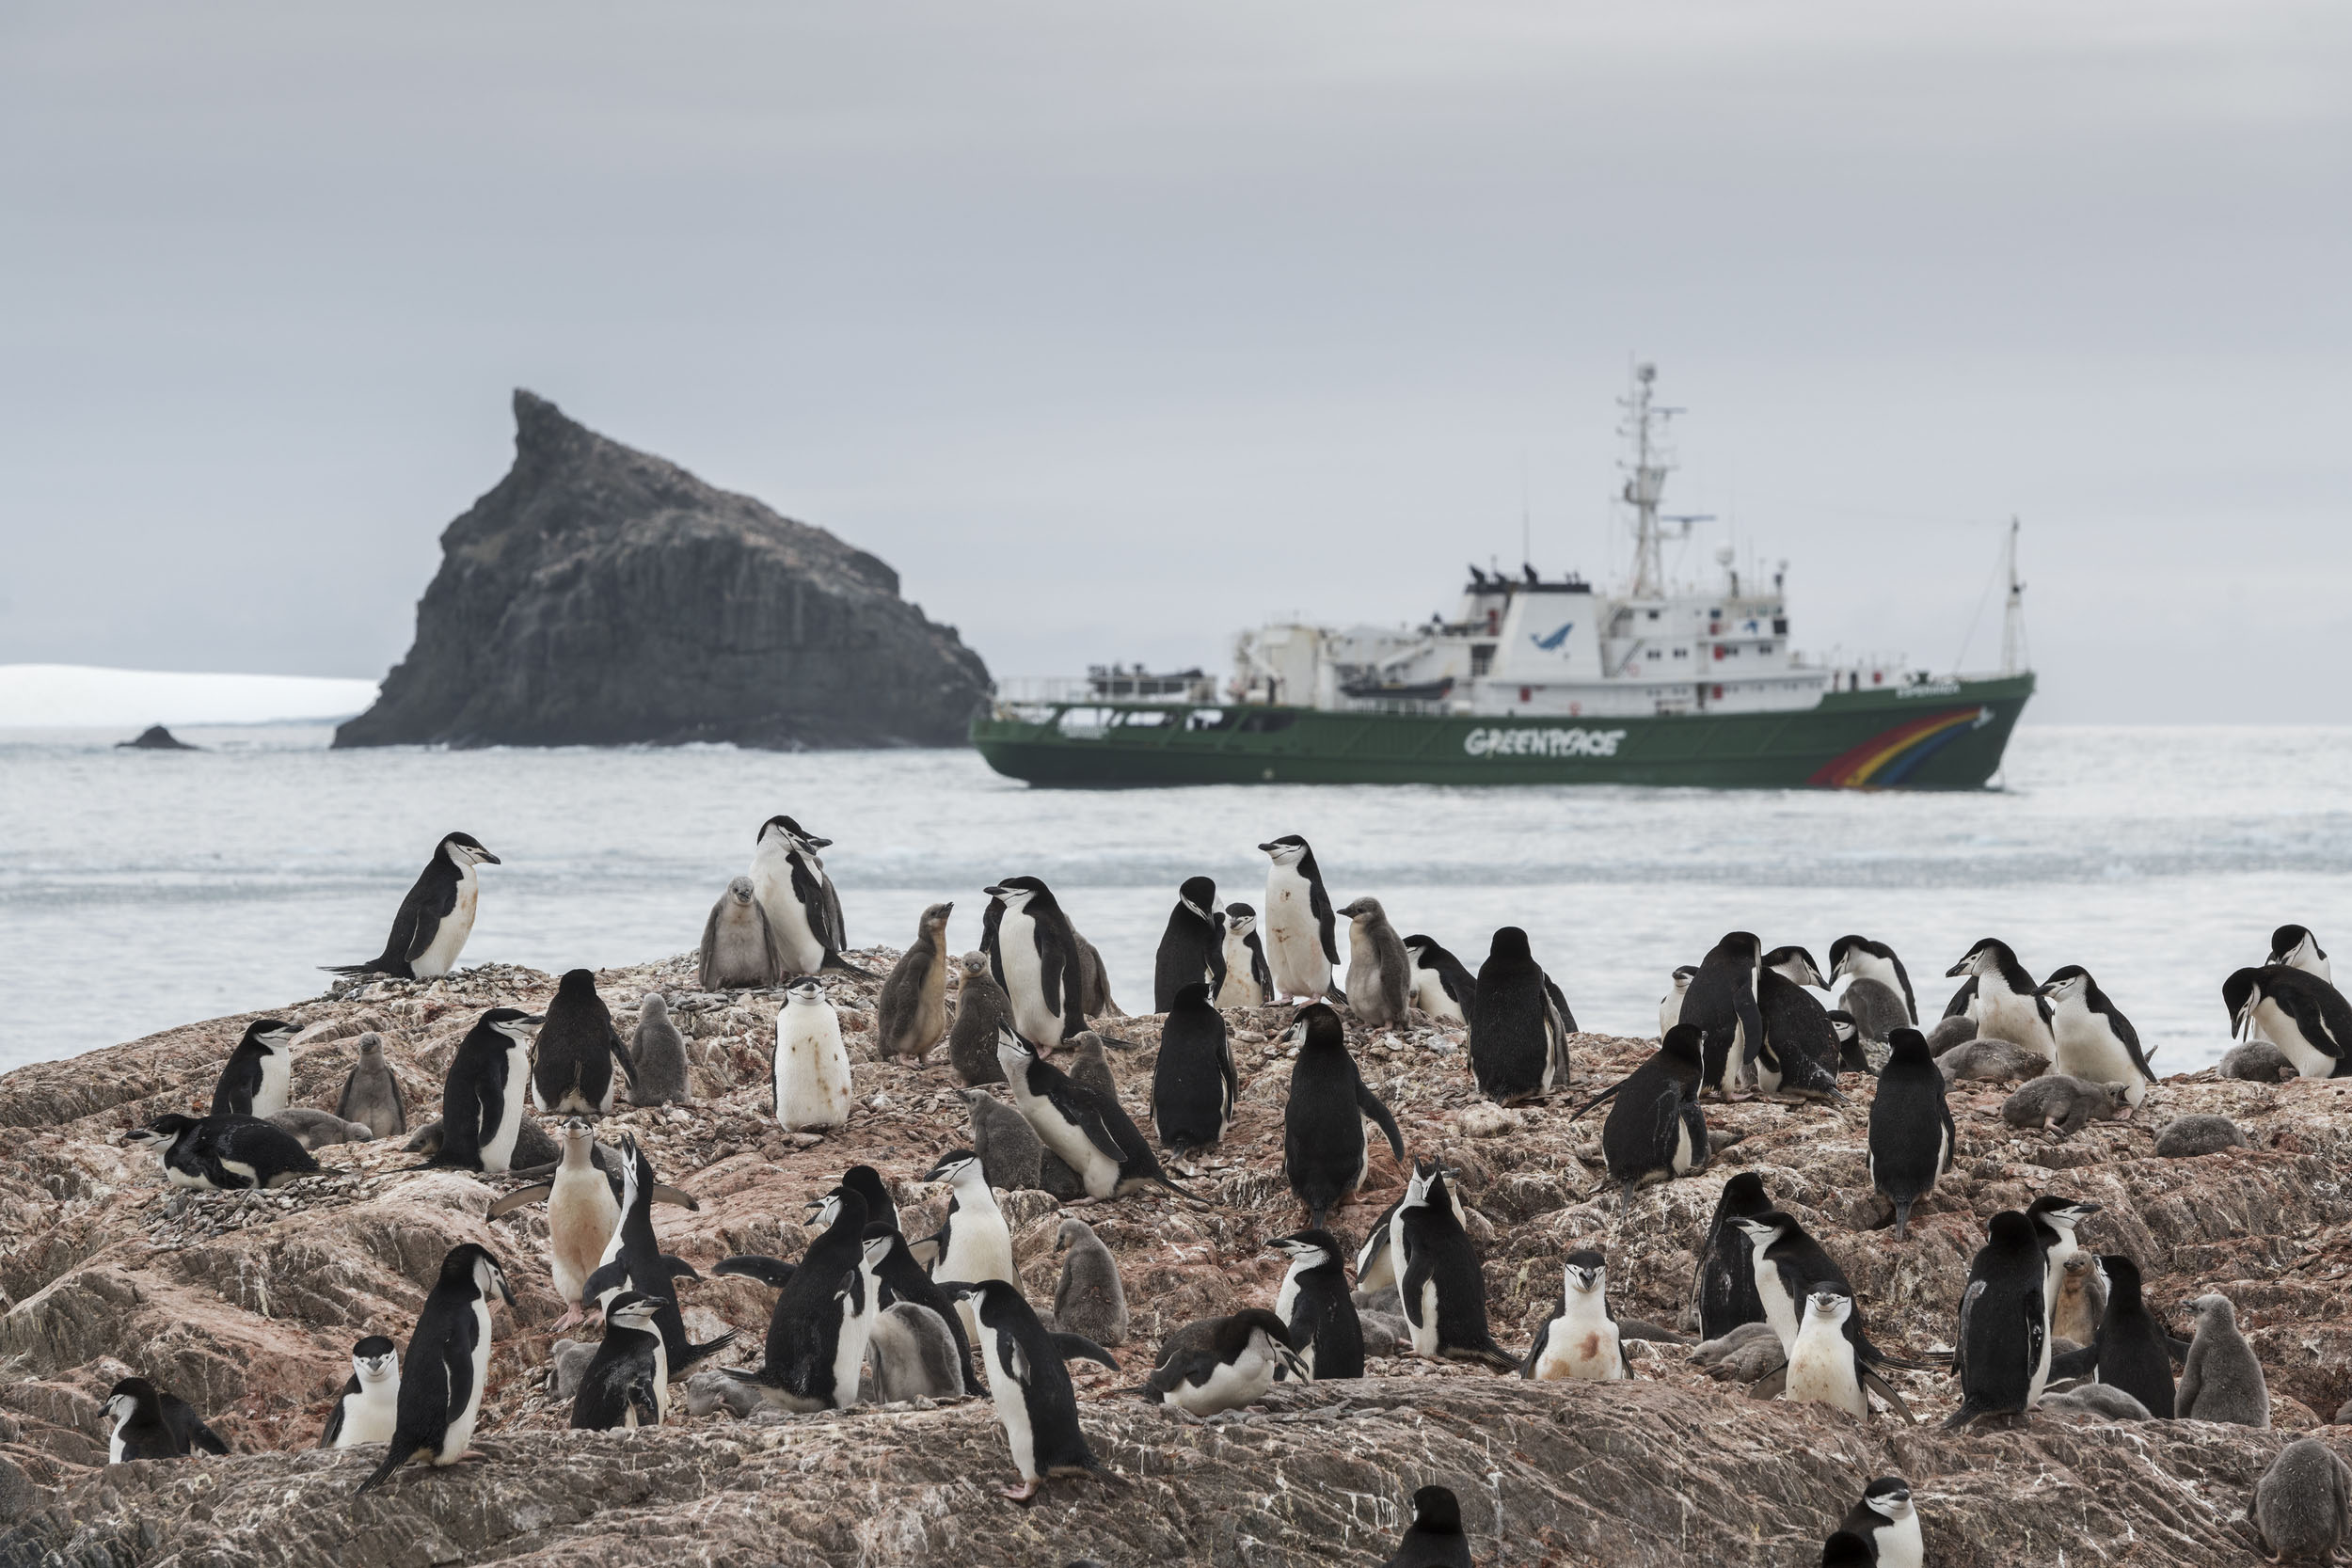 A colony of chinstrap penguins gathers on a rock. A Greenpeace ship is visible in the background.